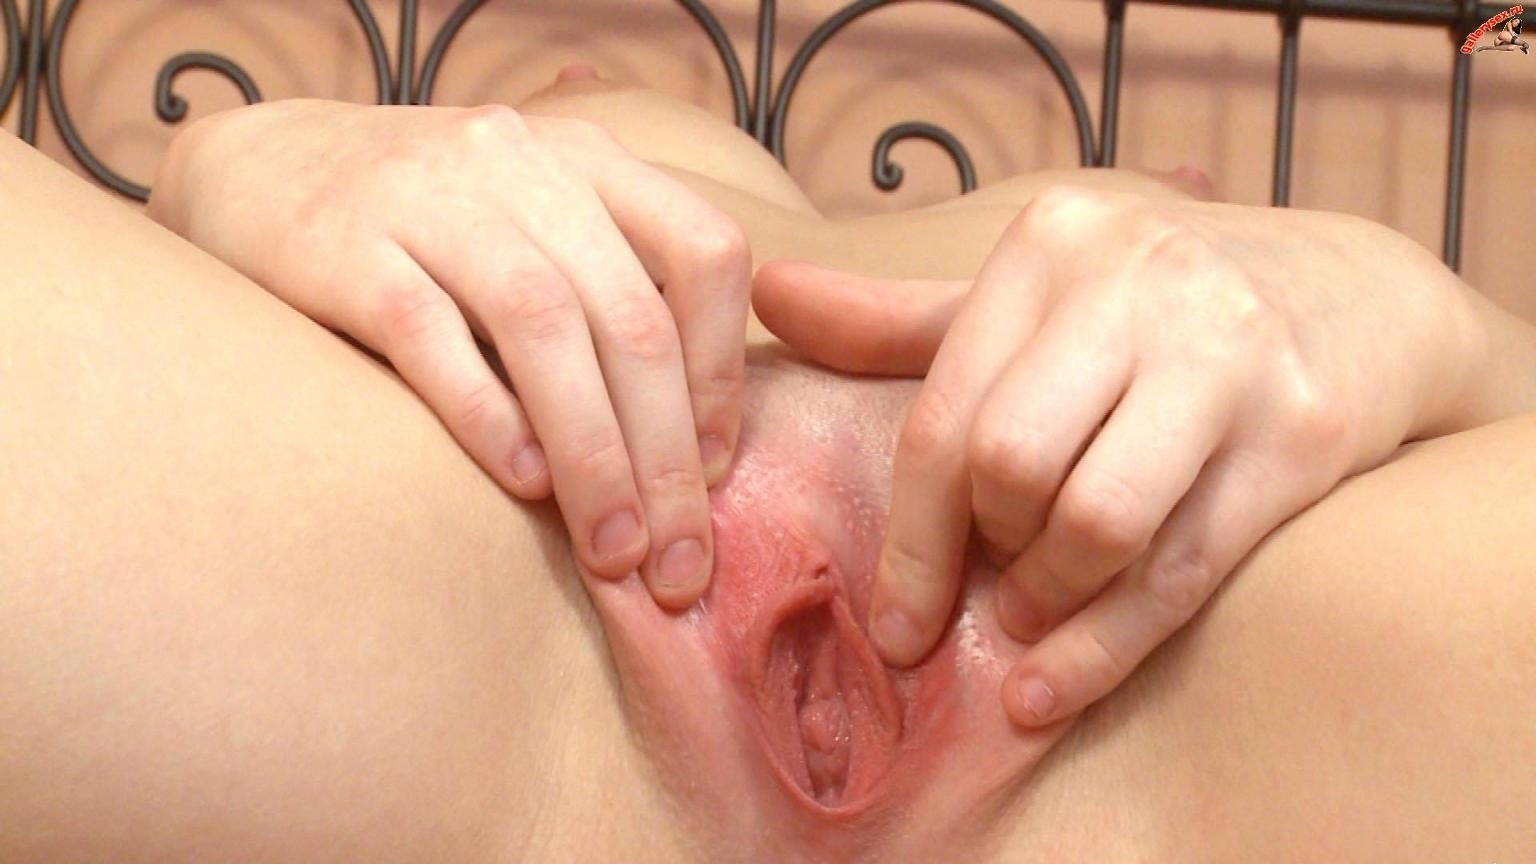 Virgin vagina close up photo